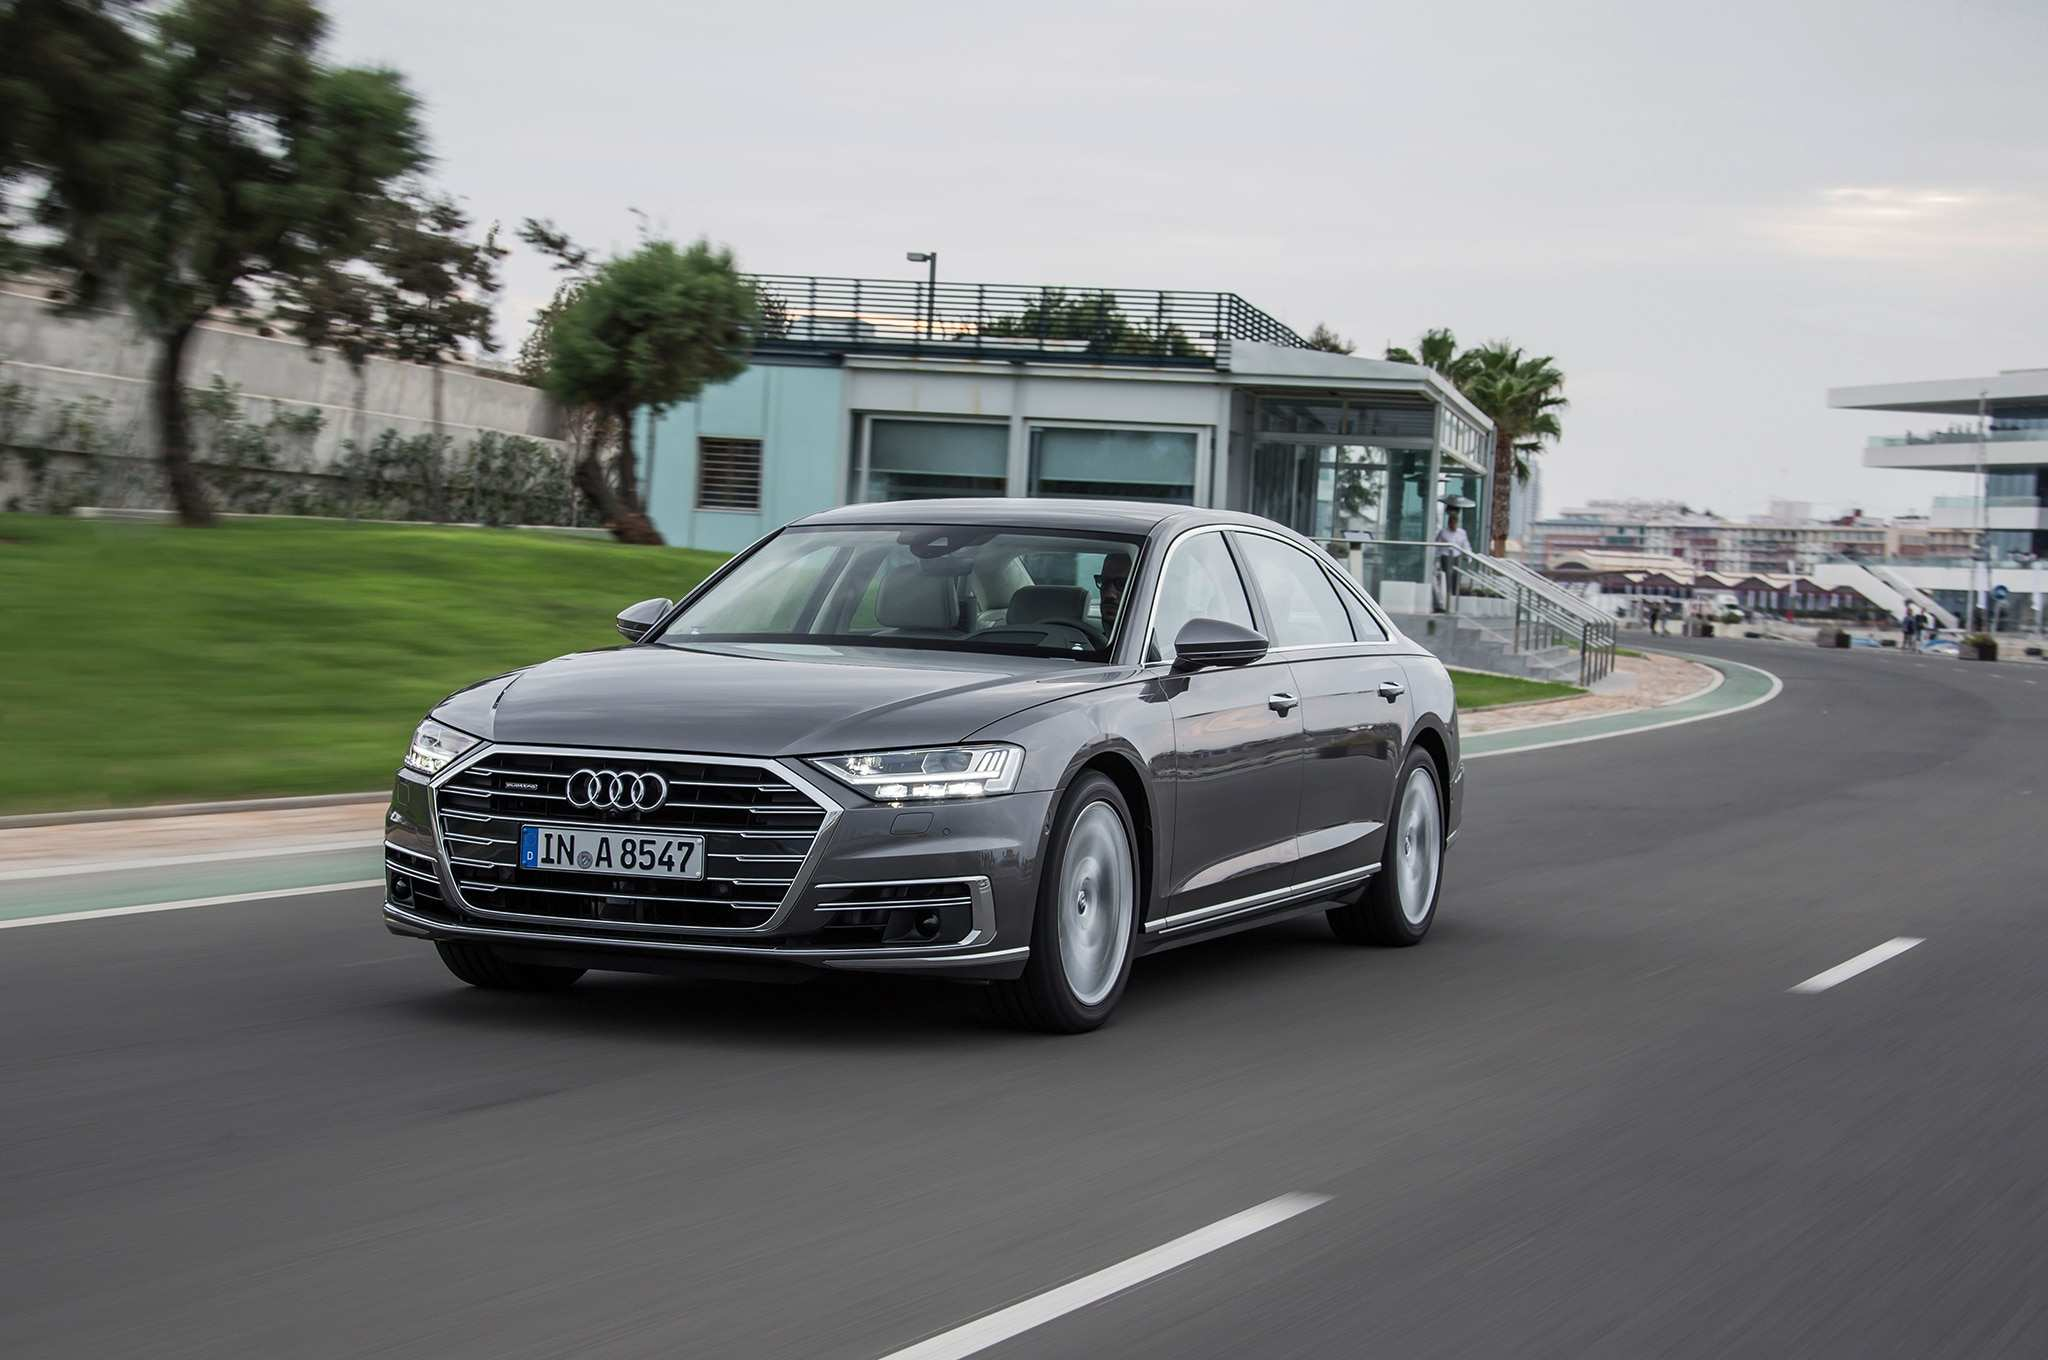 82 All New 2019 Audi A8 Features Research New with 2019 Audi A8 Features